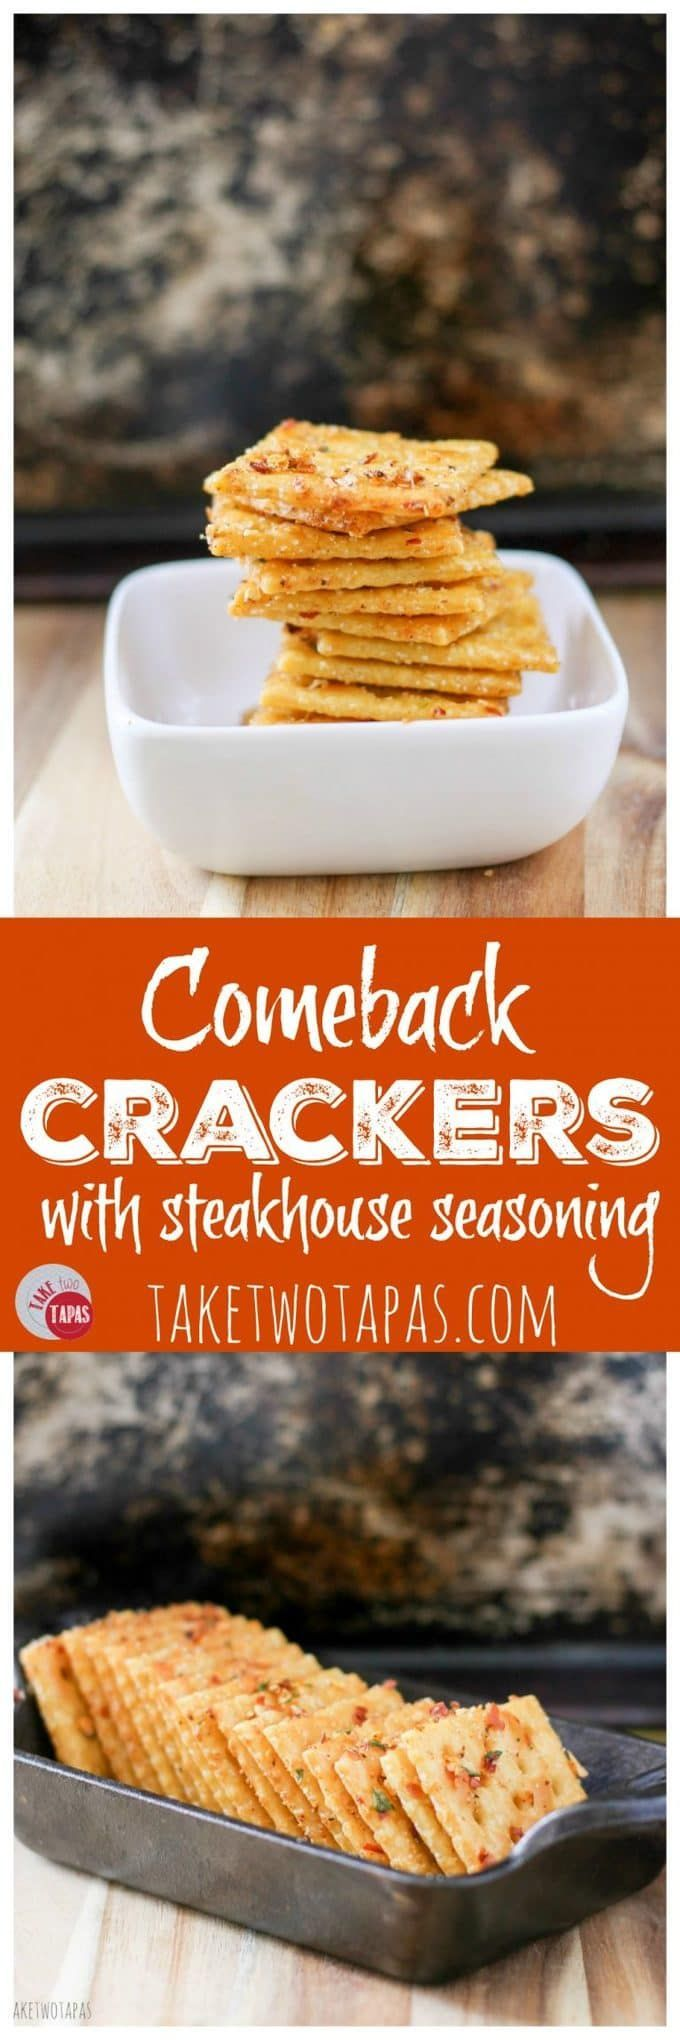 These spicy and crispy crackers are light and flaky with a little kick to them. they are so addicting and they will keep you coming back for more! Comeback Crackers Recipe | Take Two Tapas #Comeback #Crackers #Saltines